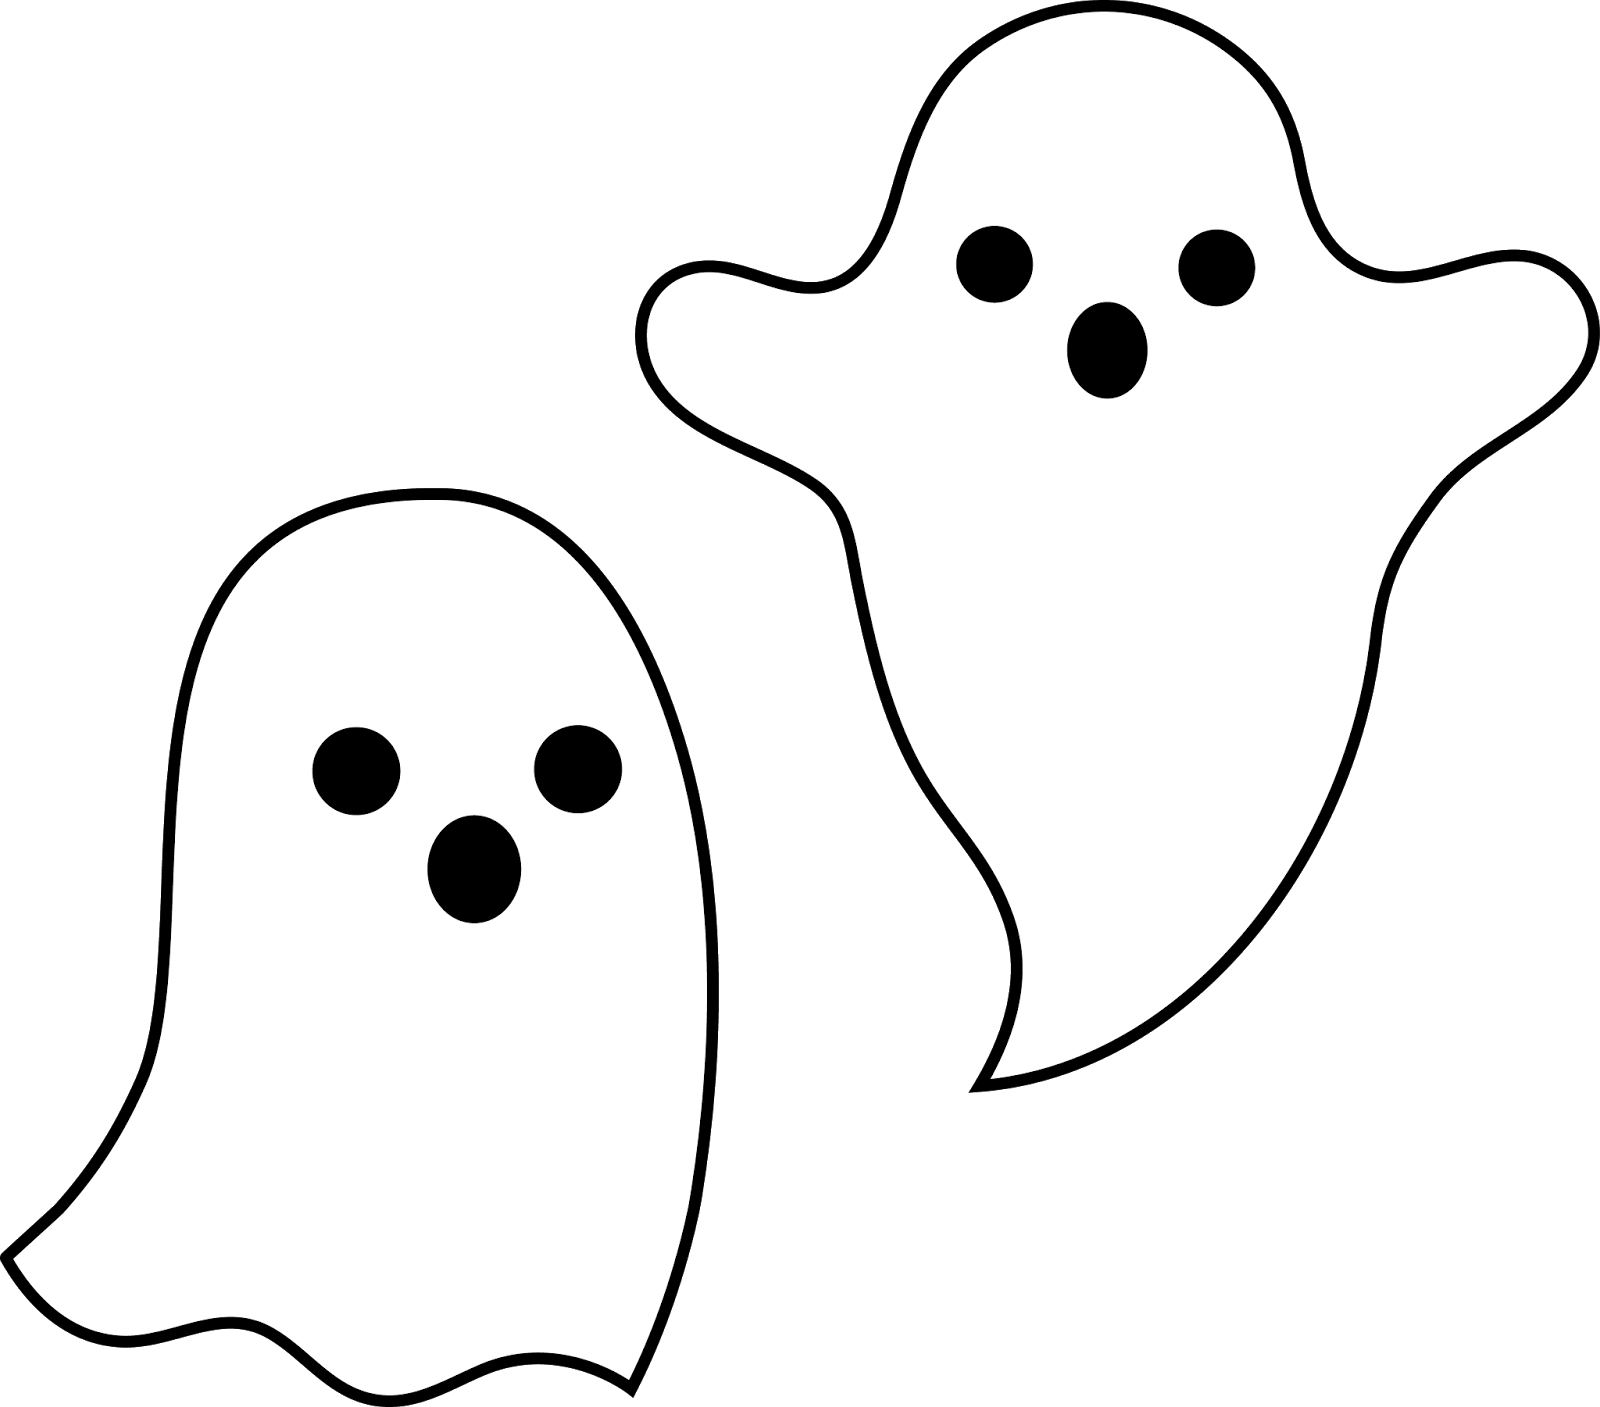 Spirit image clipart halloween picture transparent stock Ghost Silhouette Clipart at GetDrawings.com | Free for personal use ... picture transparent stock